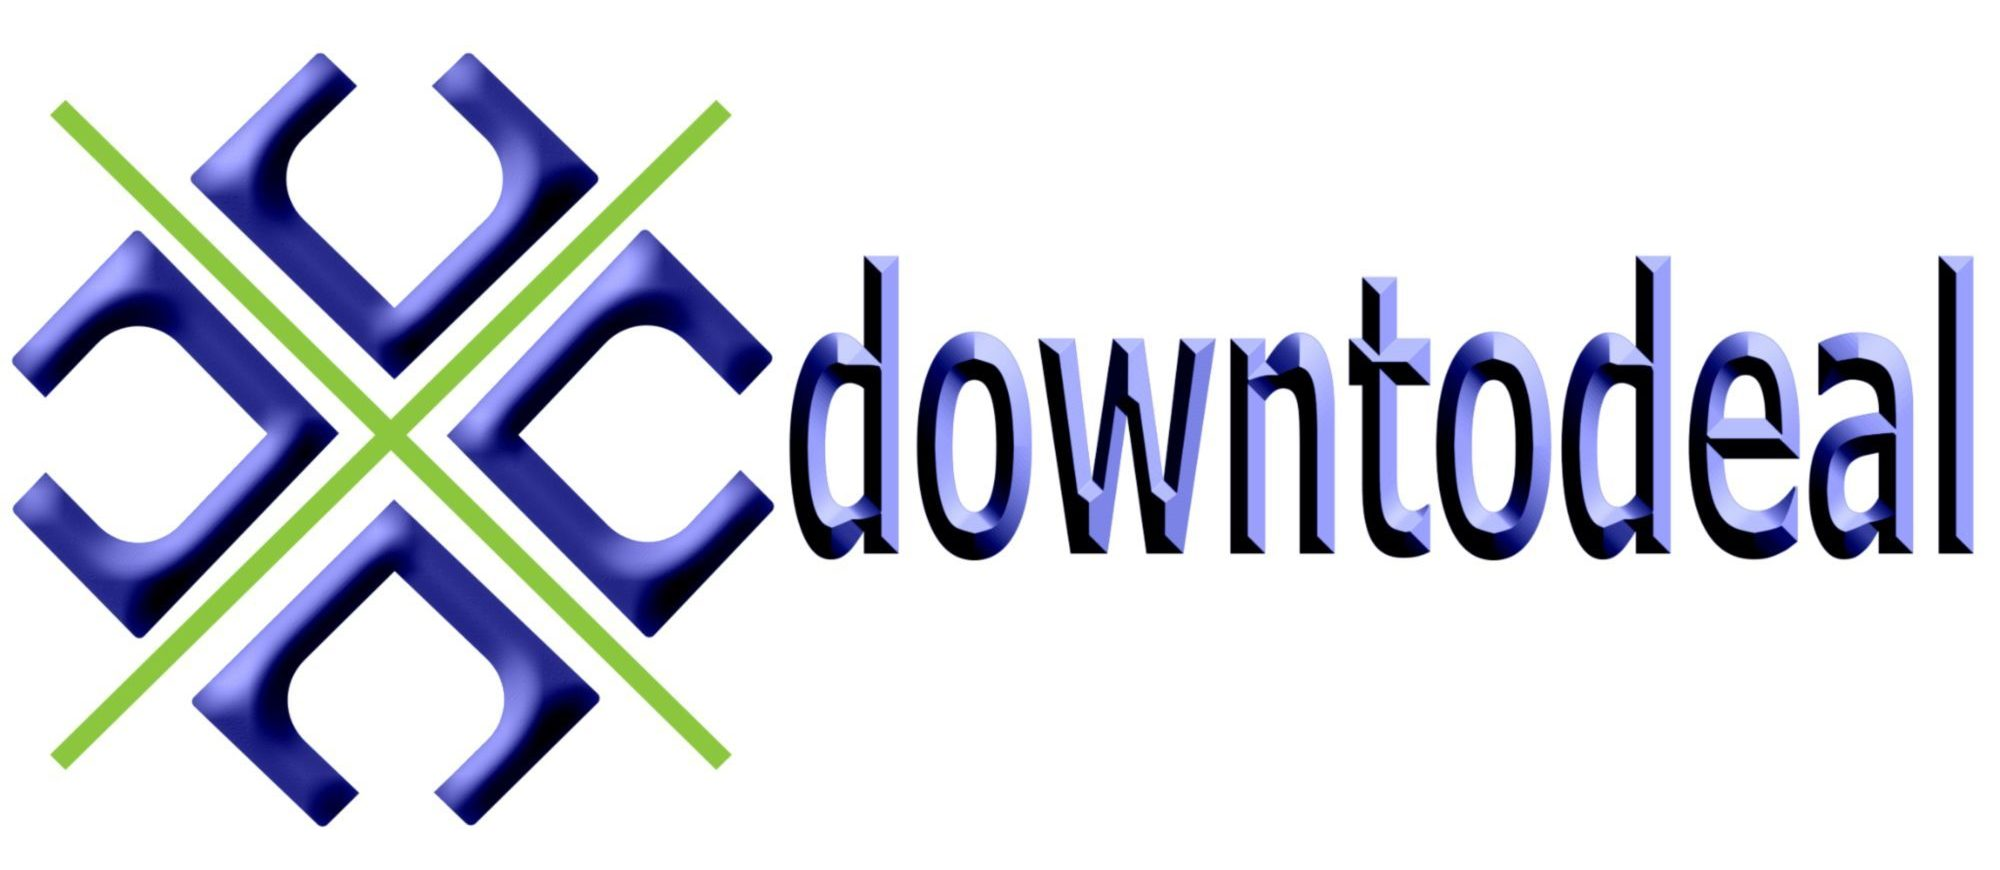 www.downtodeal.com